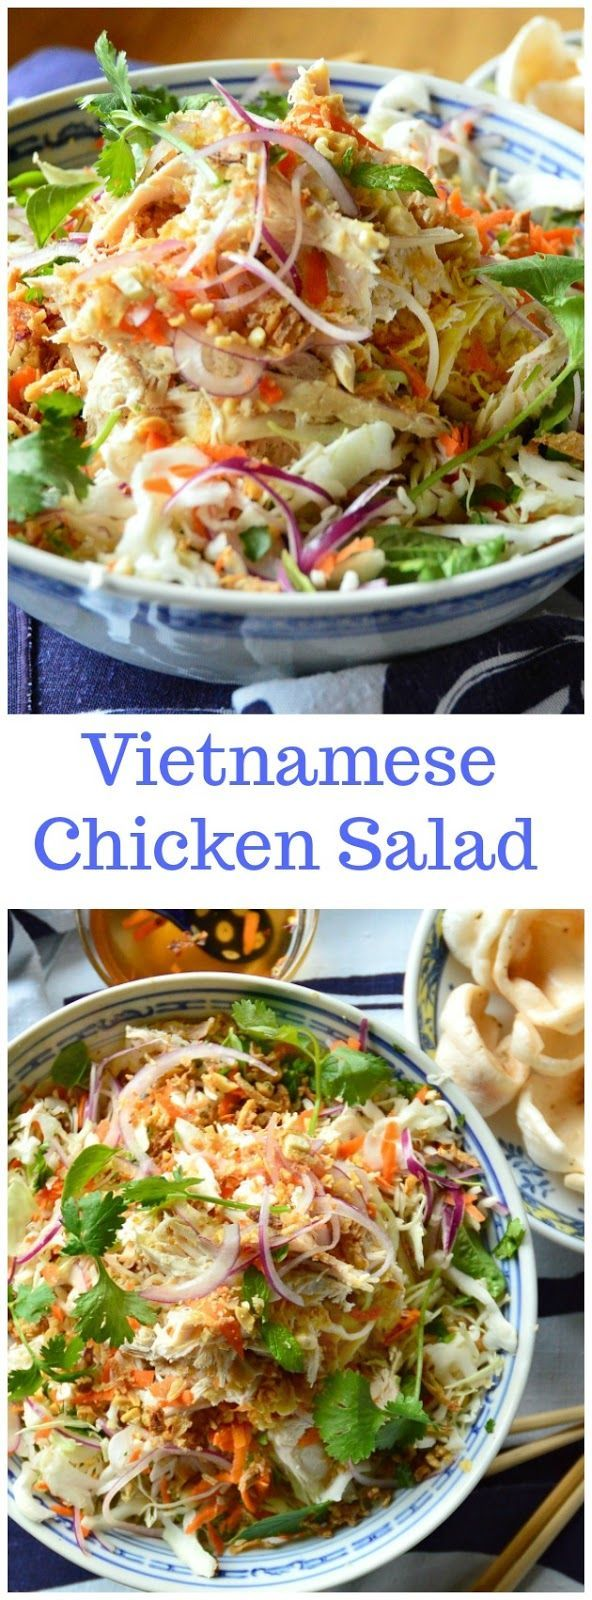 Vietnamese Chicken Salad is my very favorite salad. Salty, sweet, spicy and crunchy...this has everything one could want! www.thisishowicook.com